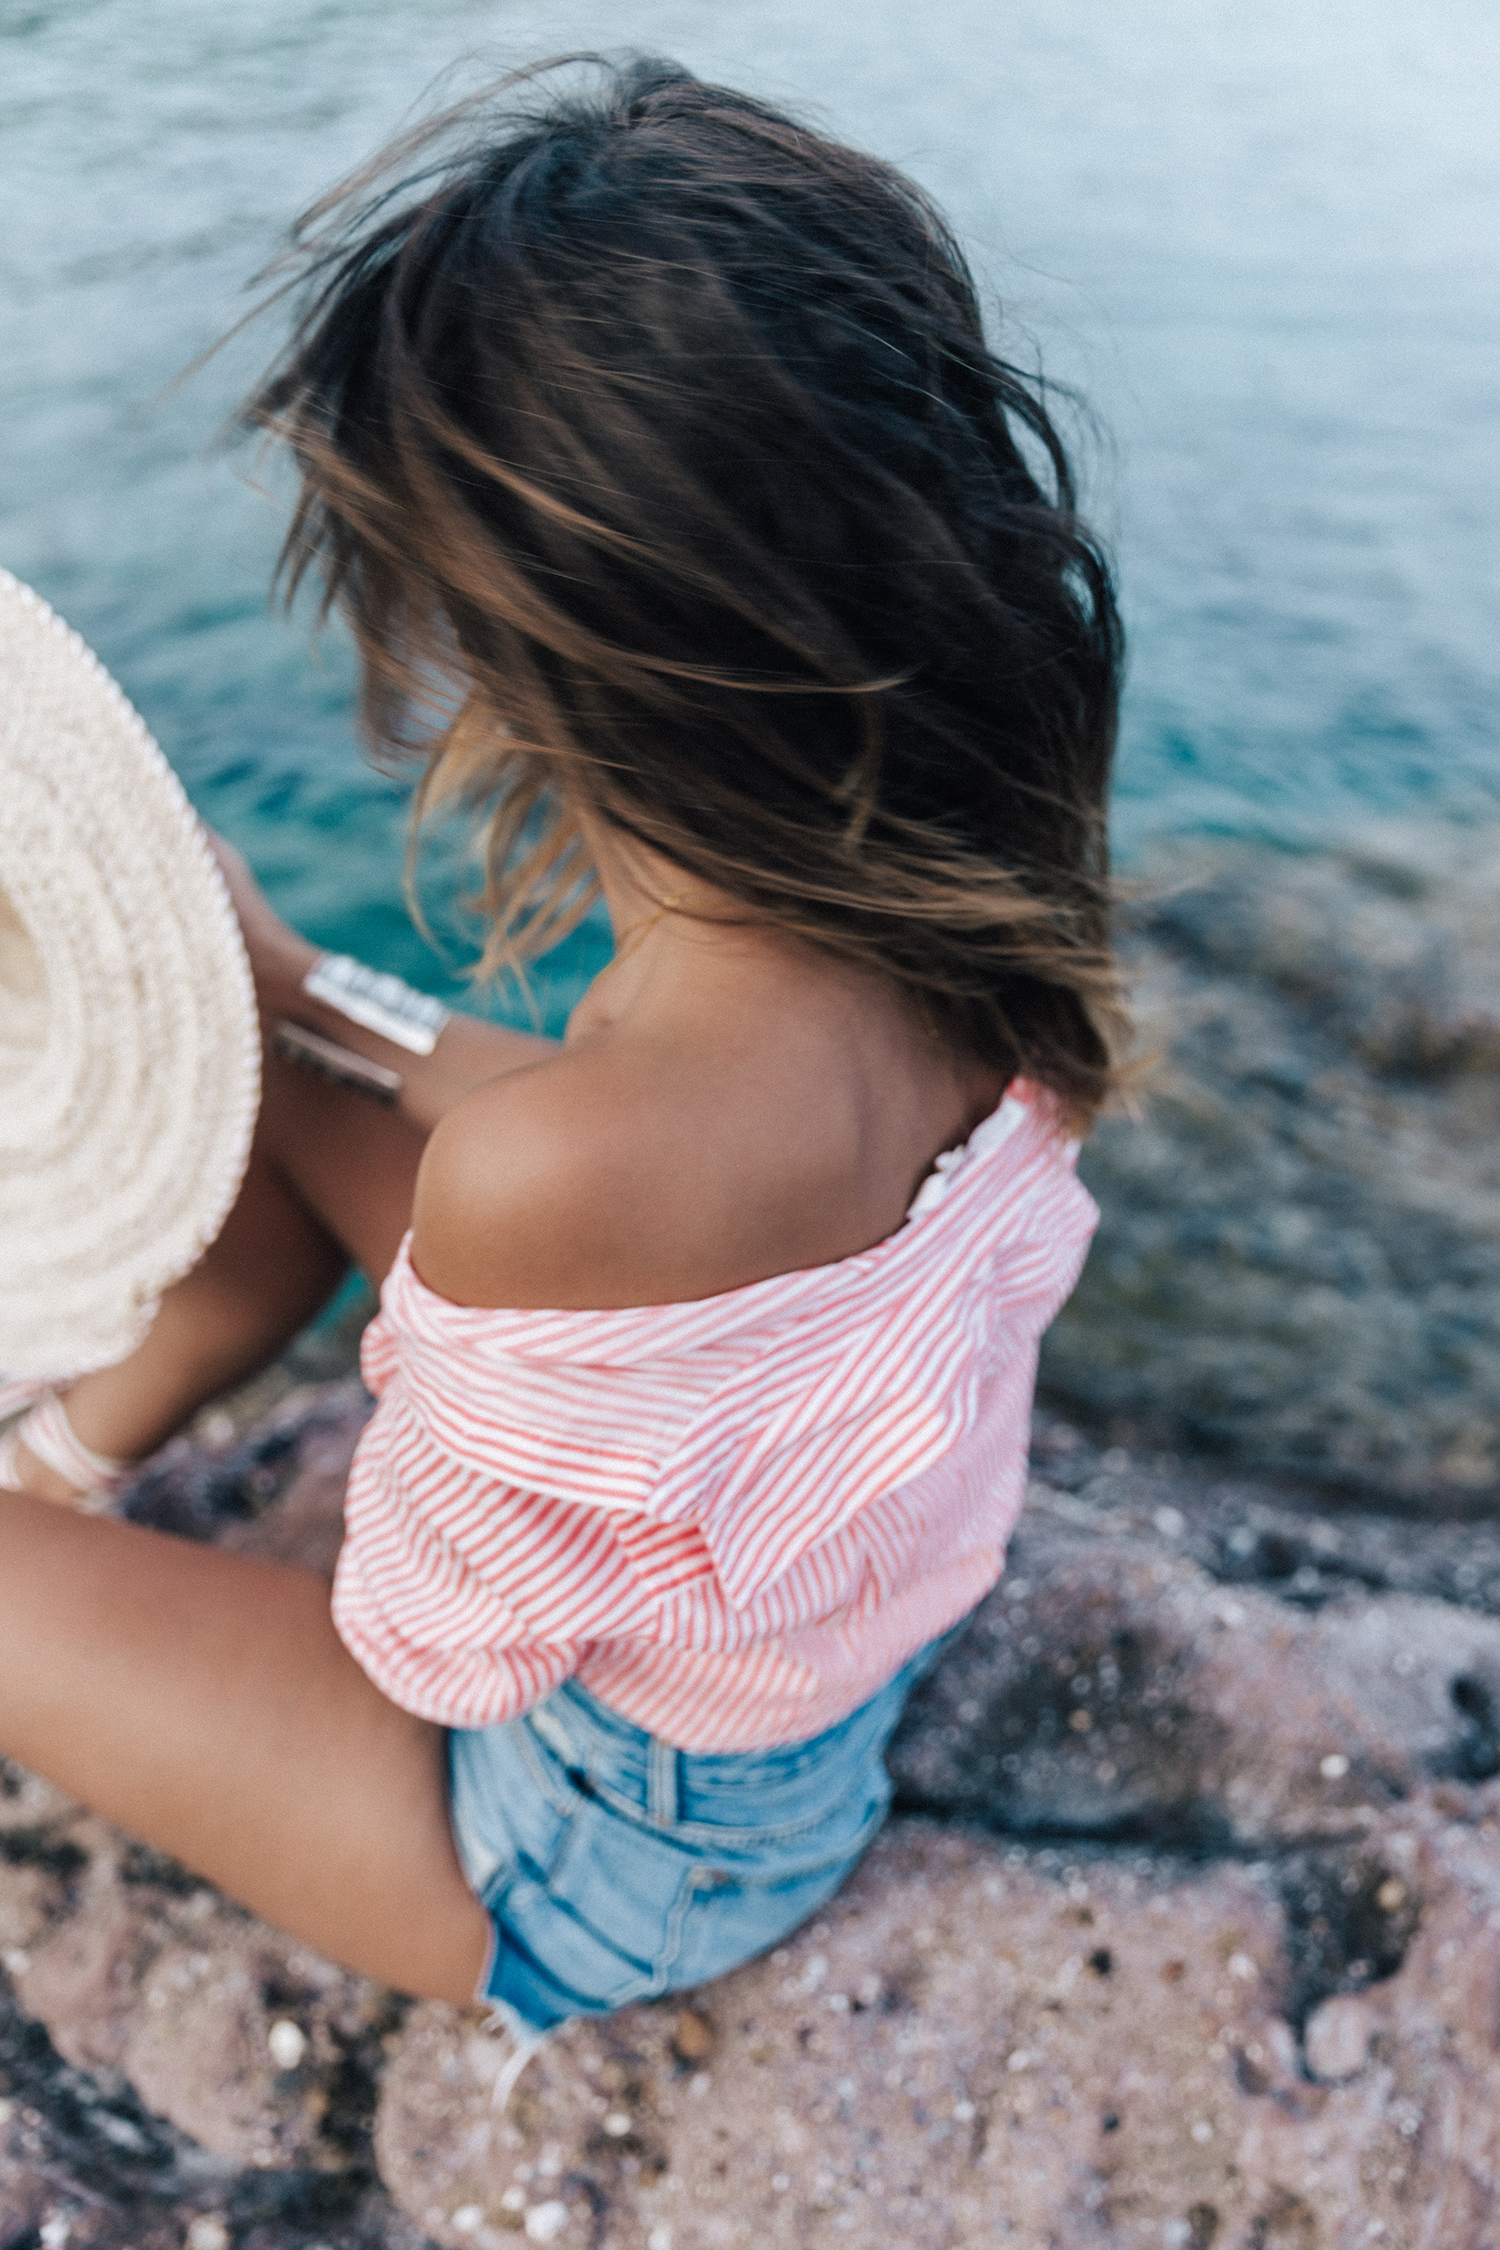 Mykonos-Collage_on_The_Road-Striped_Shirt-GRLFRND_Shorts-Straw_Hat-Denim-Espadrilles-Soludos_Escapes-Greece-Outfit-44